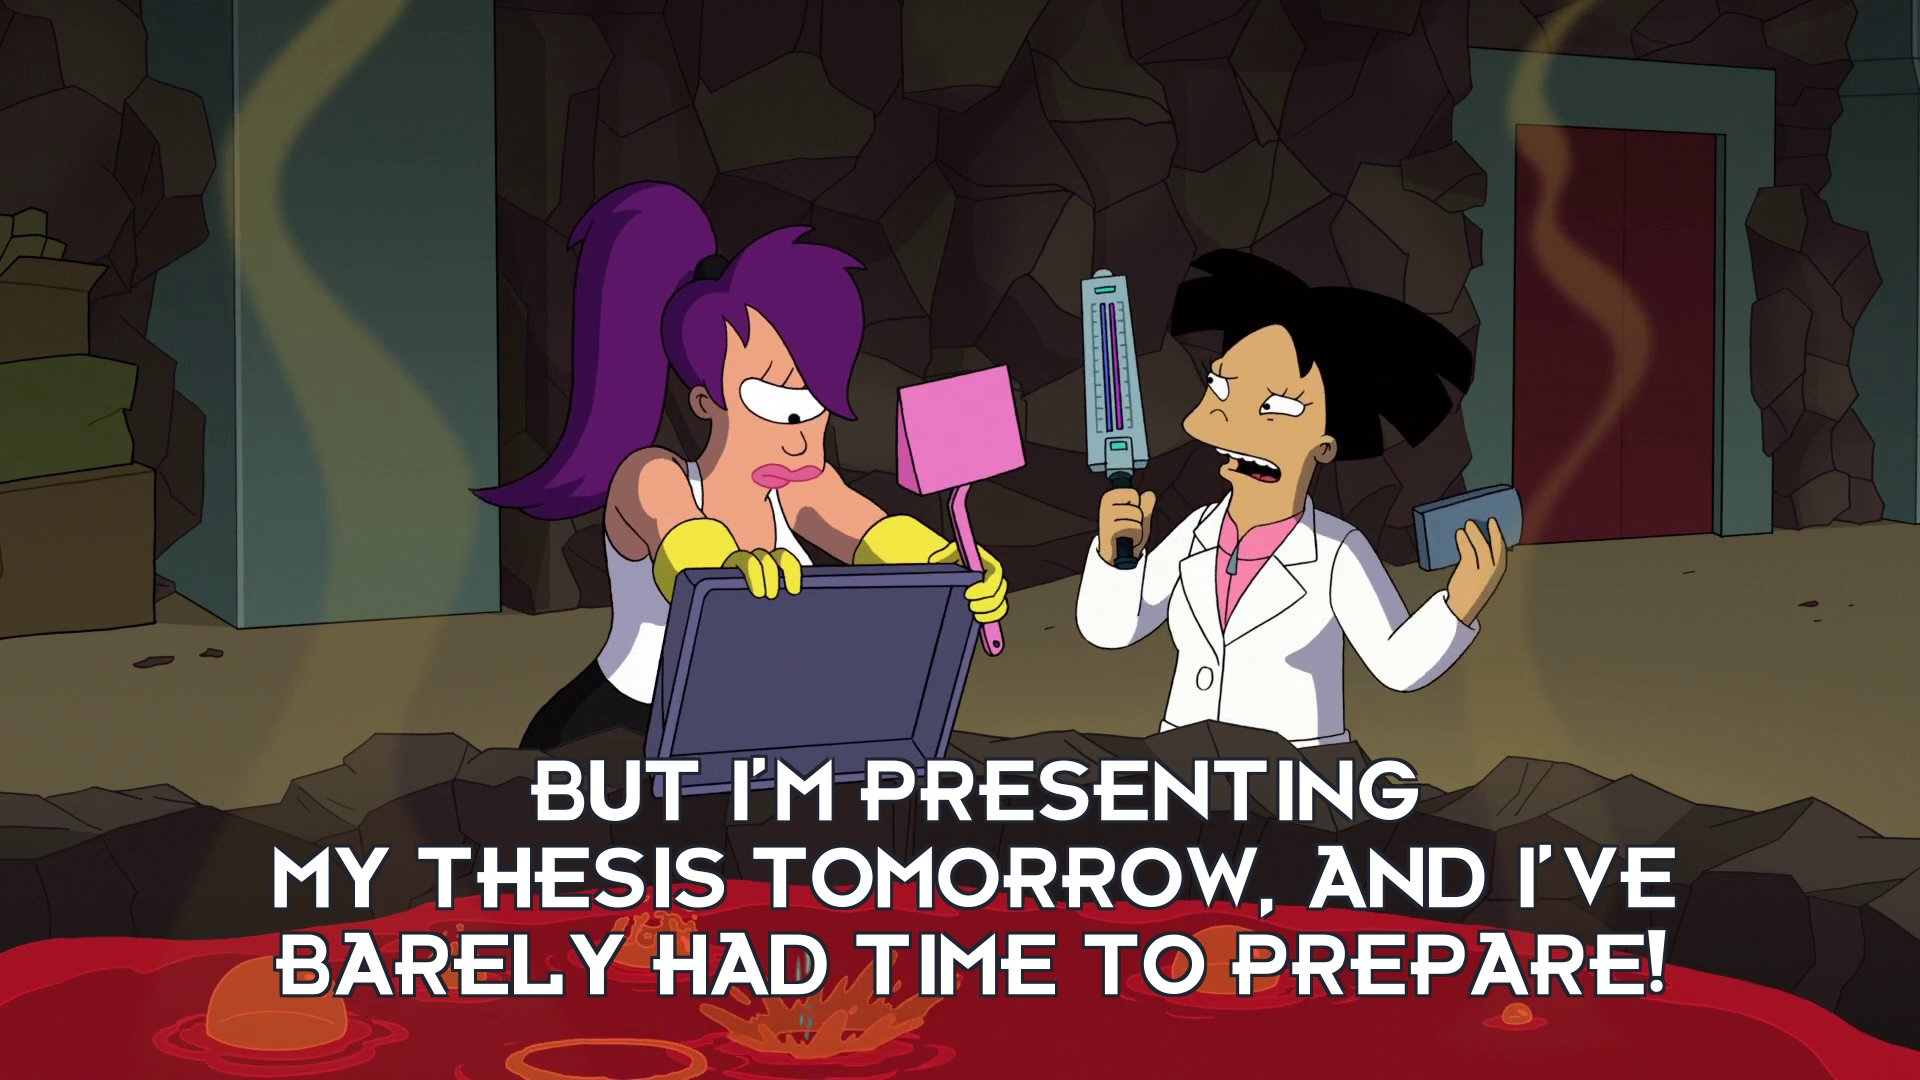 Amy Wong: But I'm presenting my thesis tomorrow, and I've barely had time to prepare!